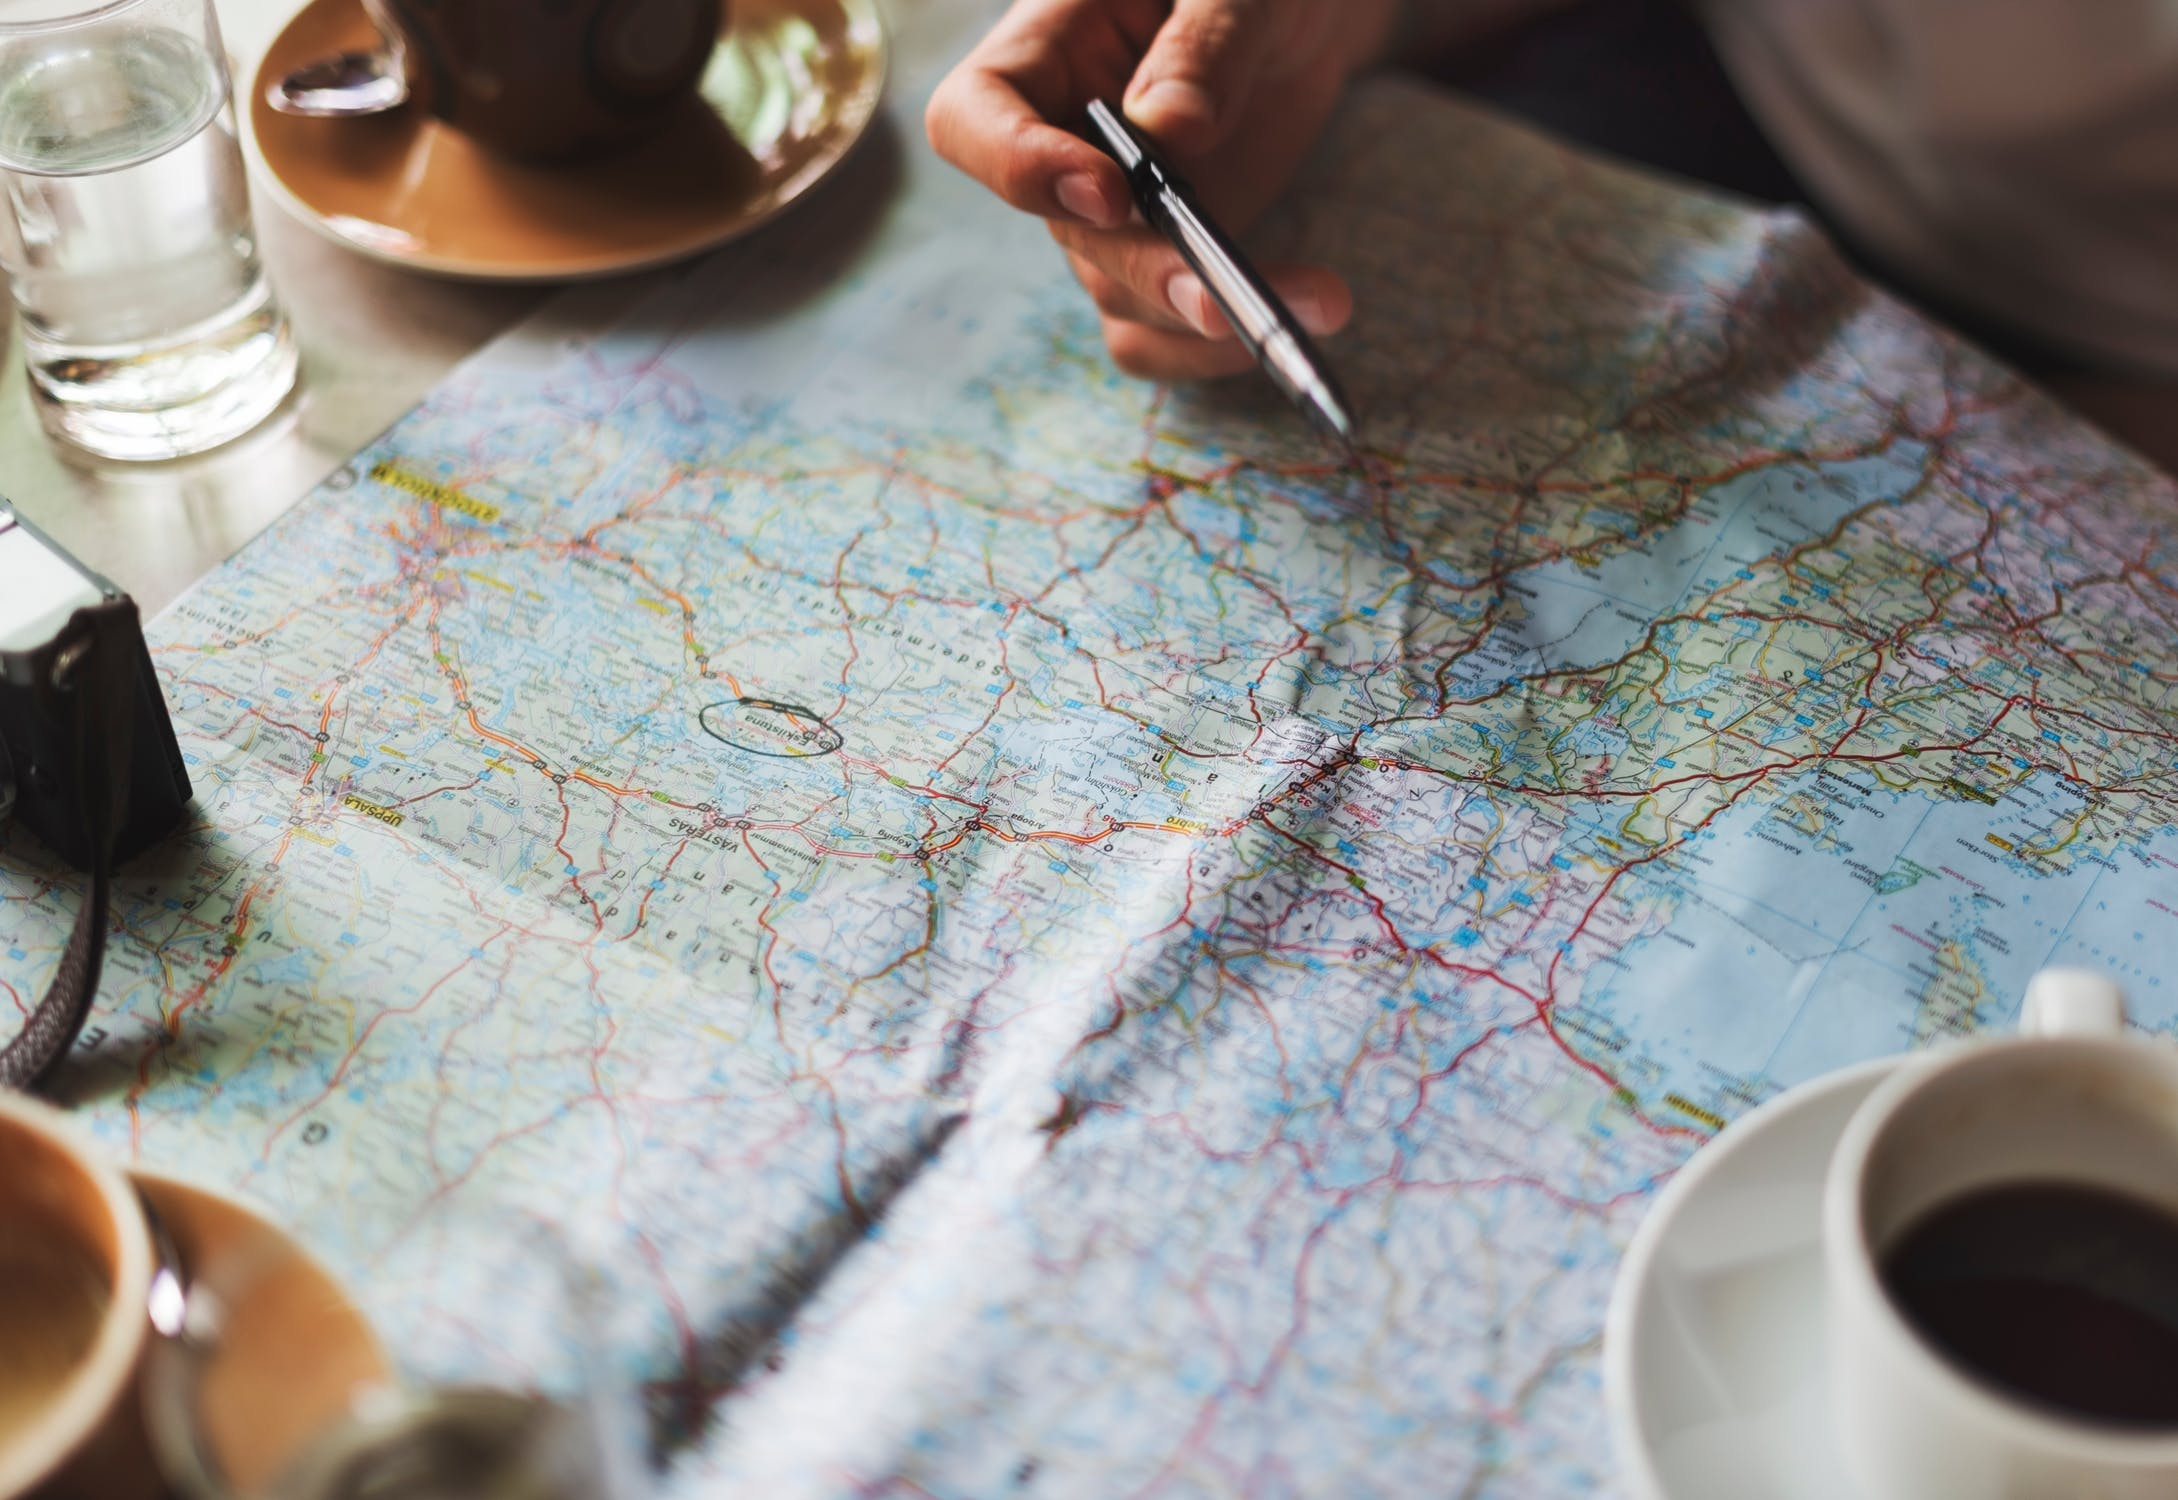 An individual looking at destinations on a map. It is important to pick destinations carefully when traveling with family members with memory loss.